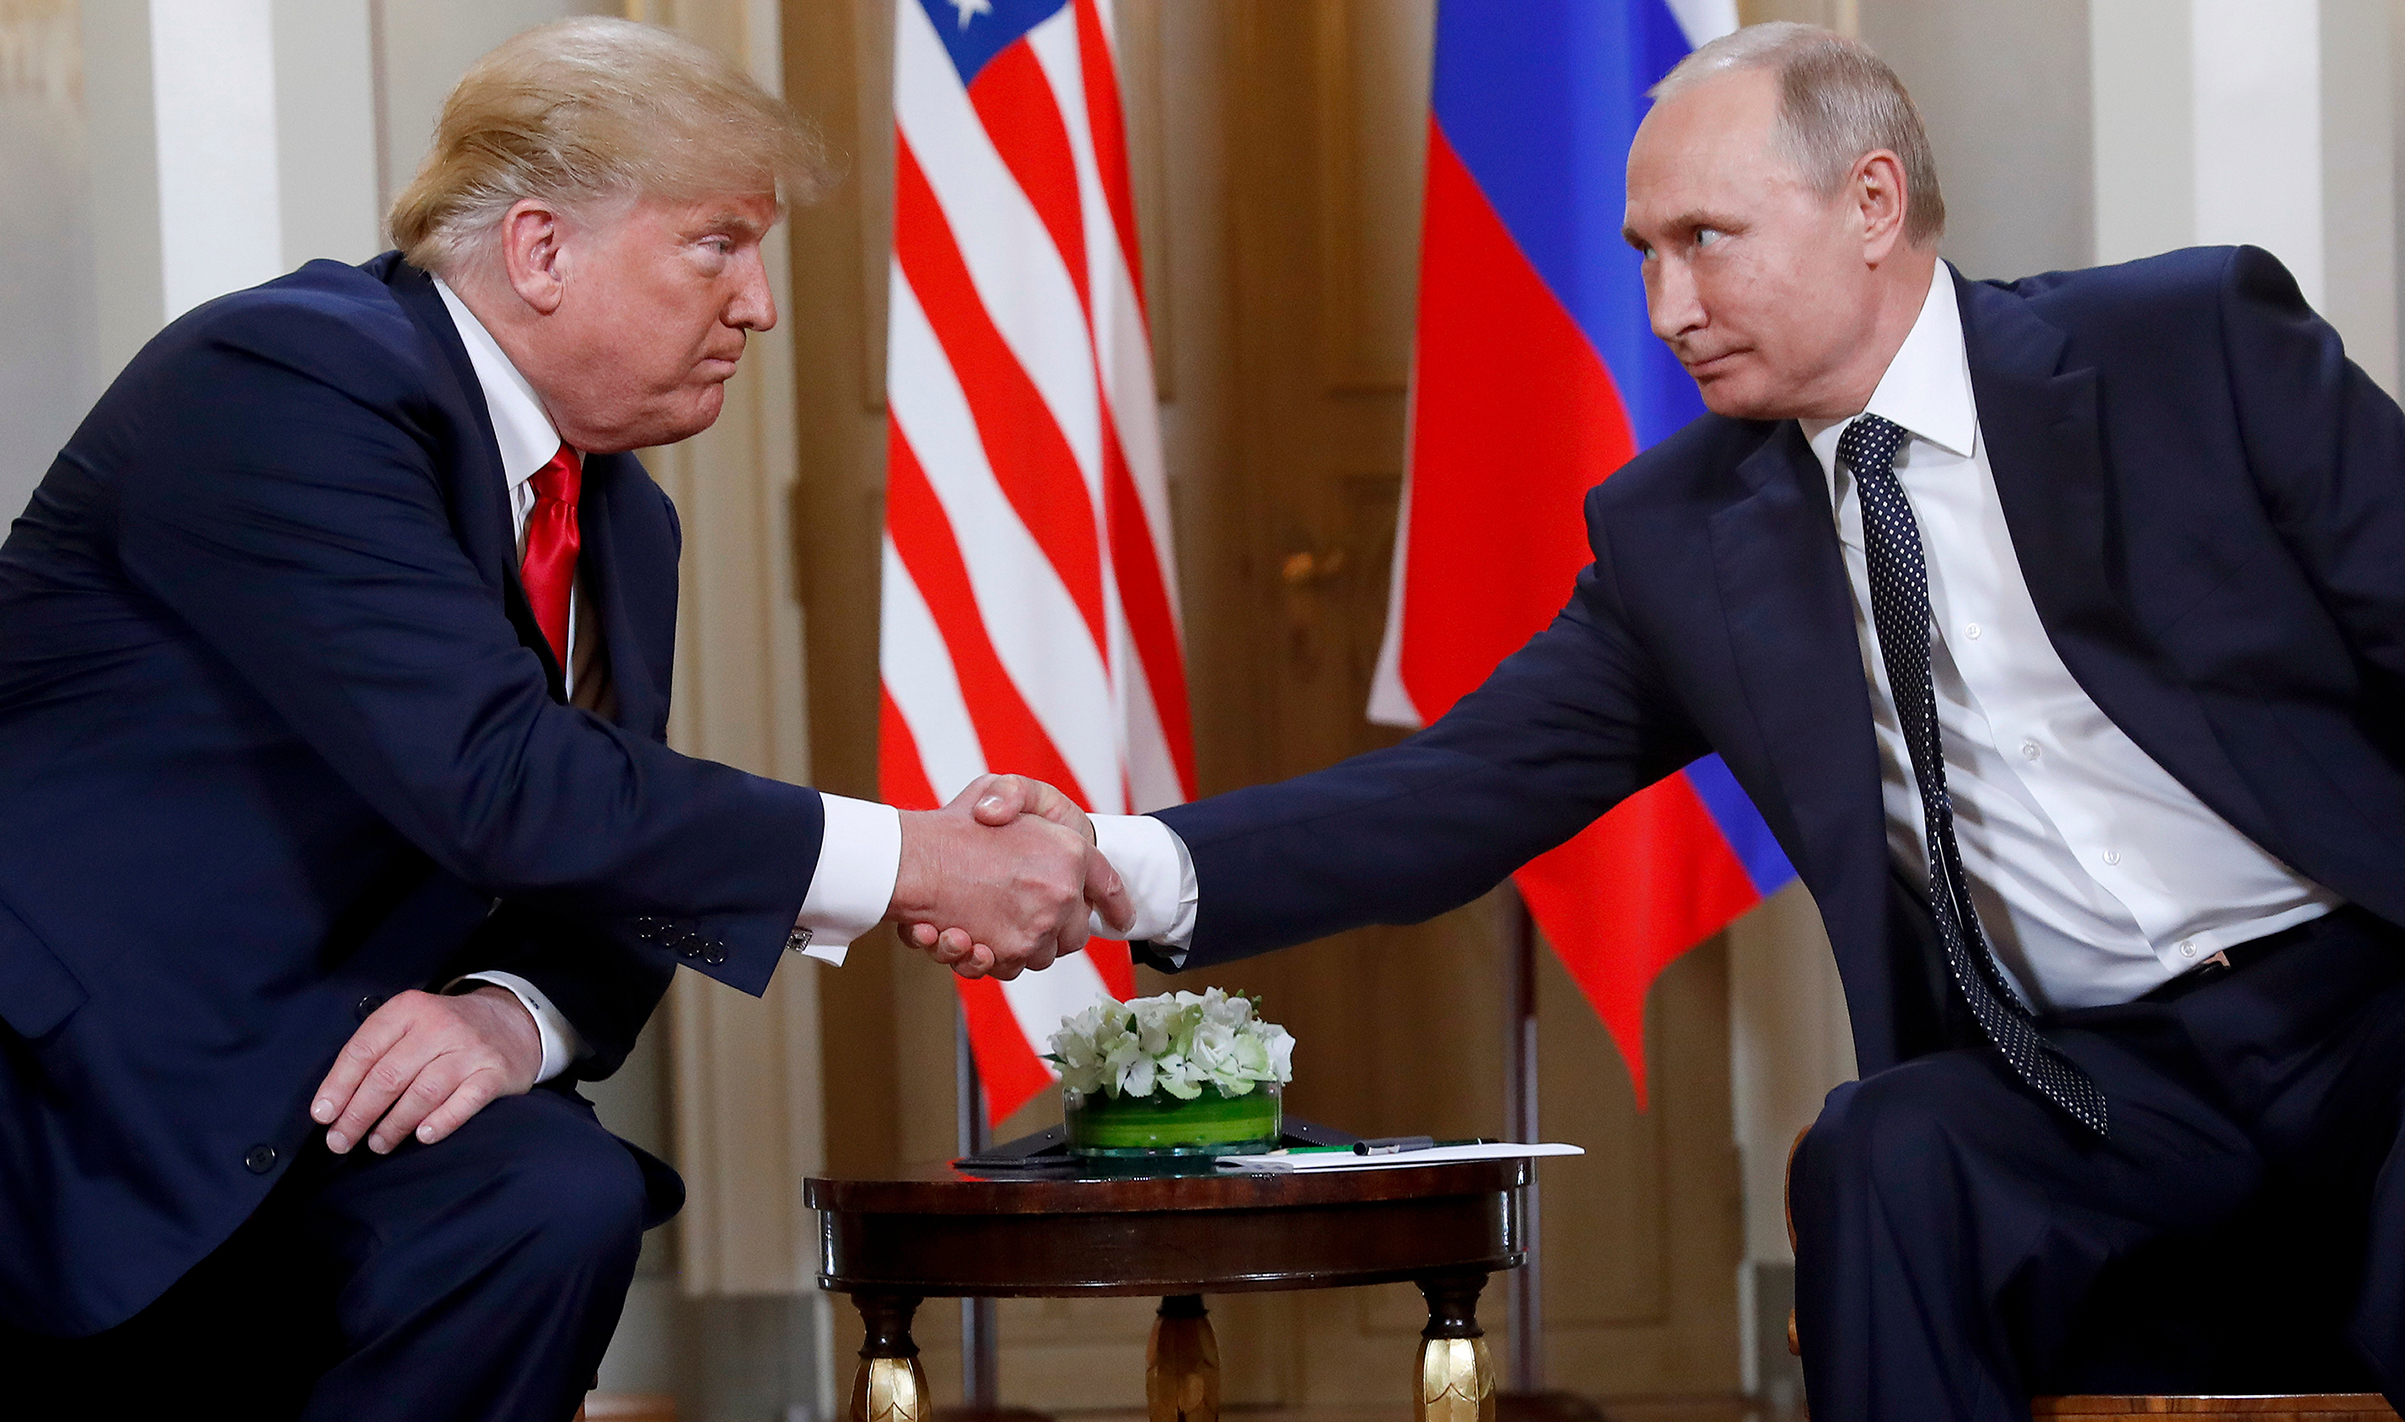 President Donald Trump and Russian President Vladimir Putin shake hands at the beginning of a meeting in Helsinki on July 15, 2018.